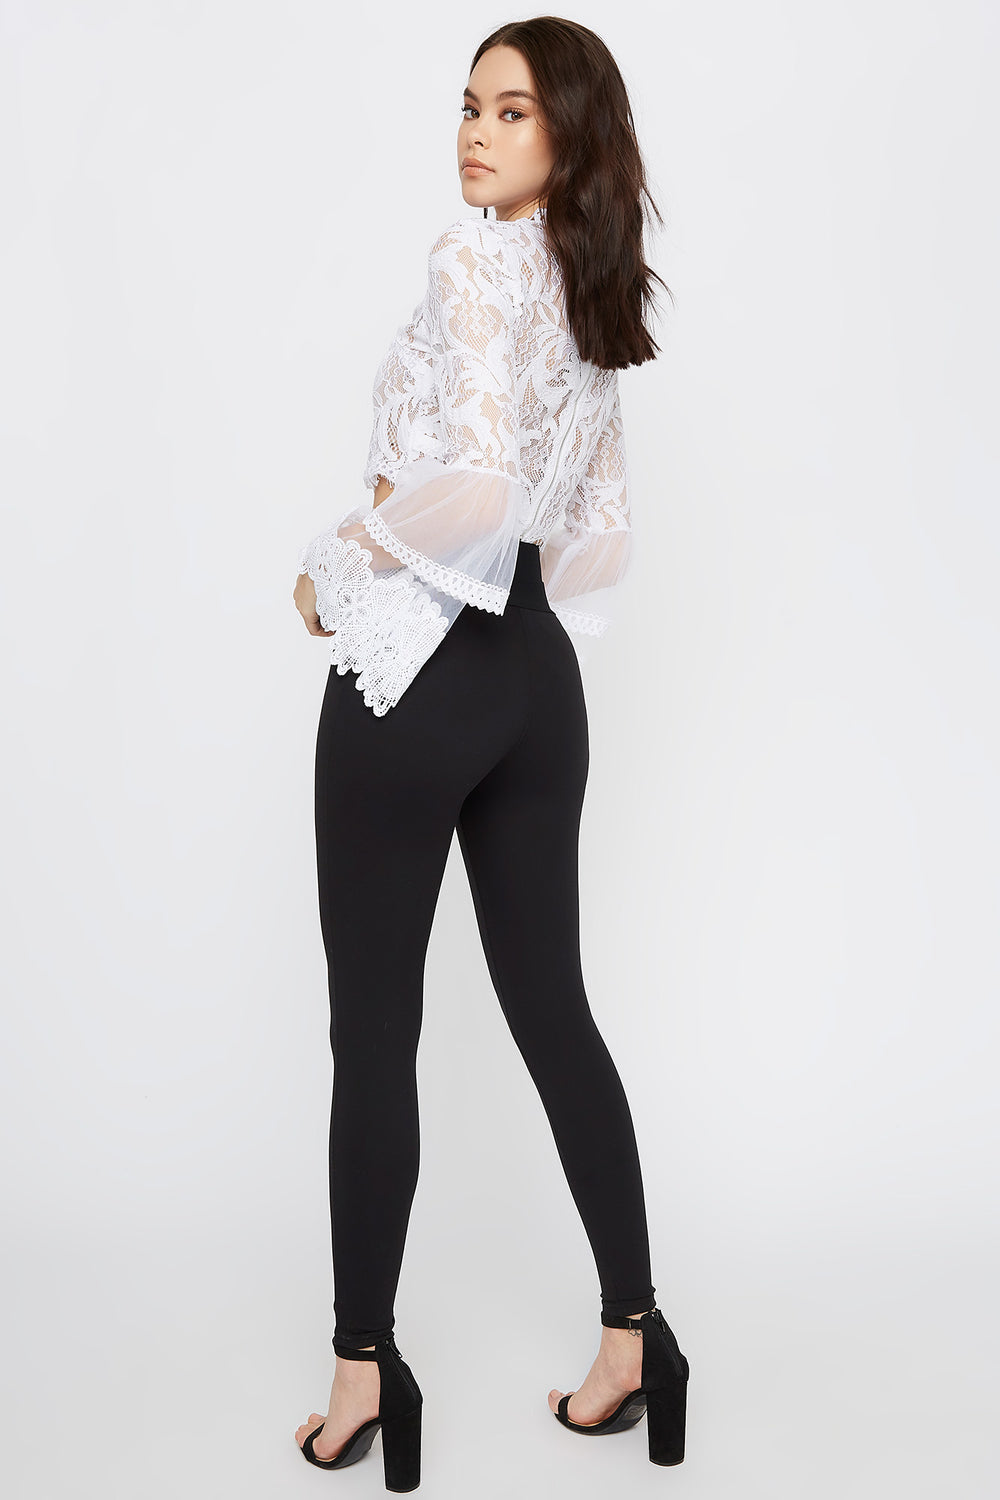 Cropped Mock Neck Lace Scallop Blouse White